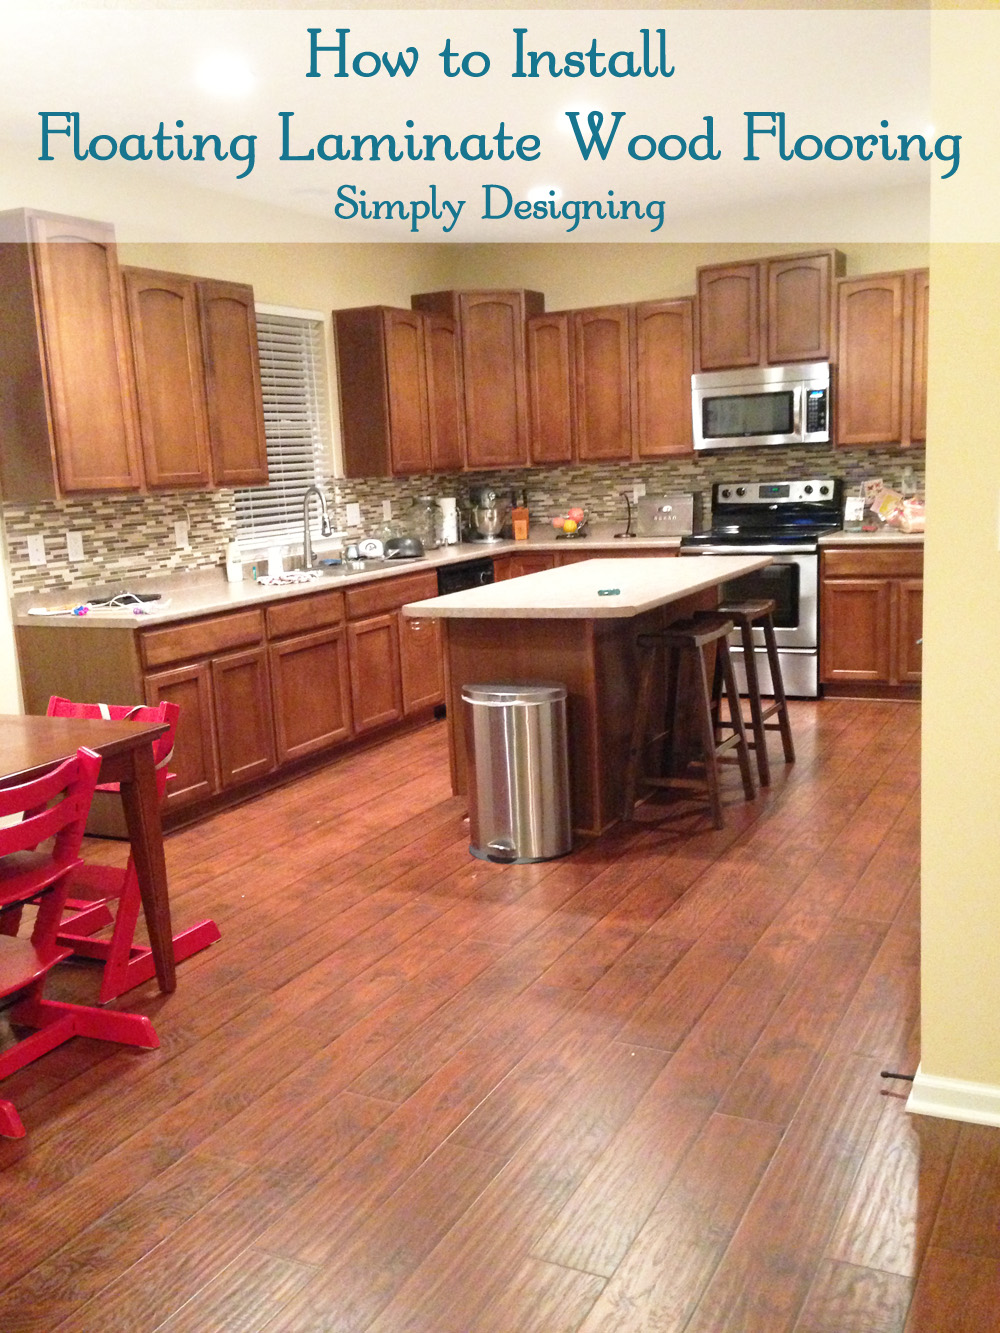 How To Install Floating Laminate Wood Flooring | #diy #homeimprovement # Flooring | Simply